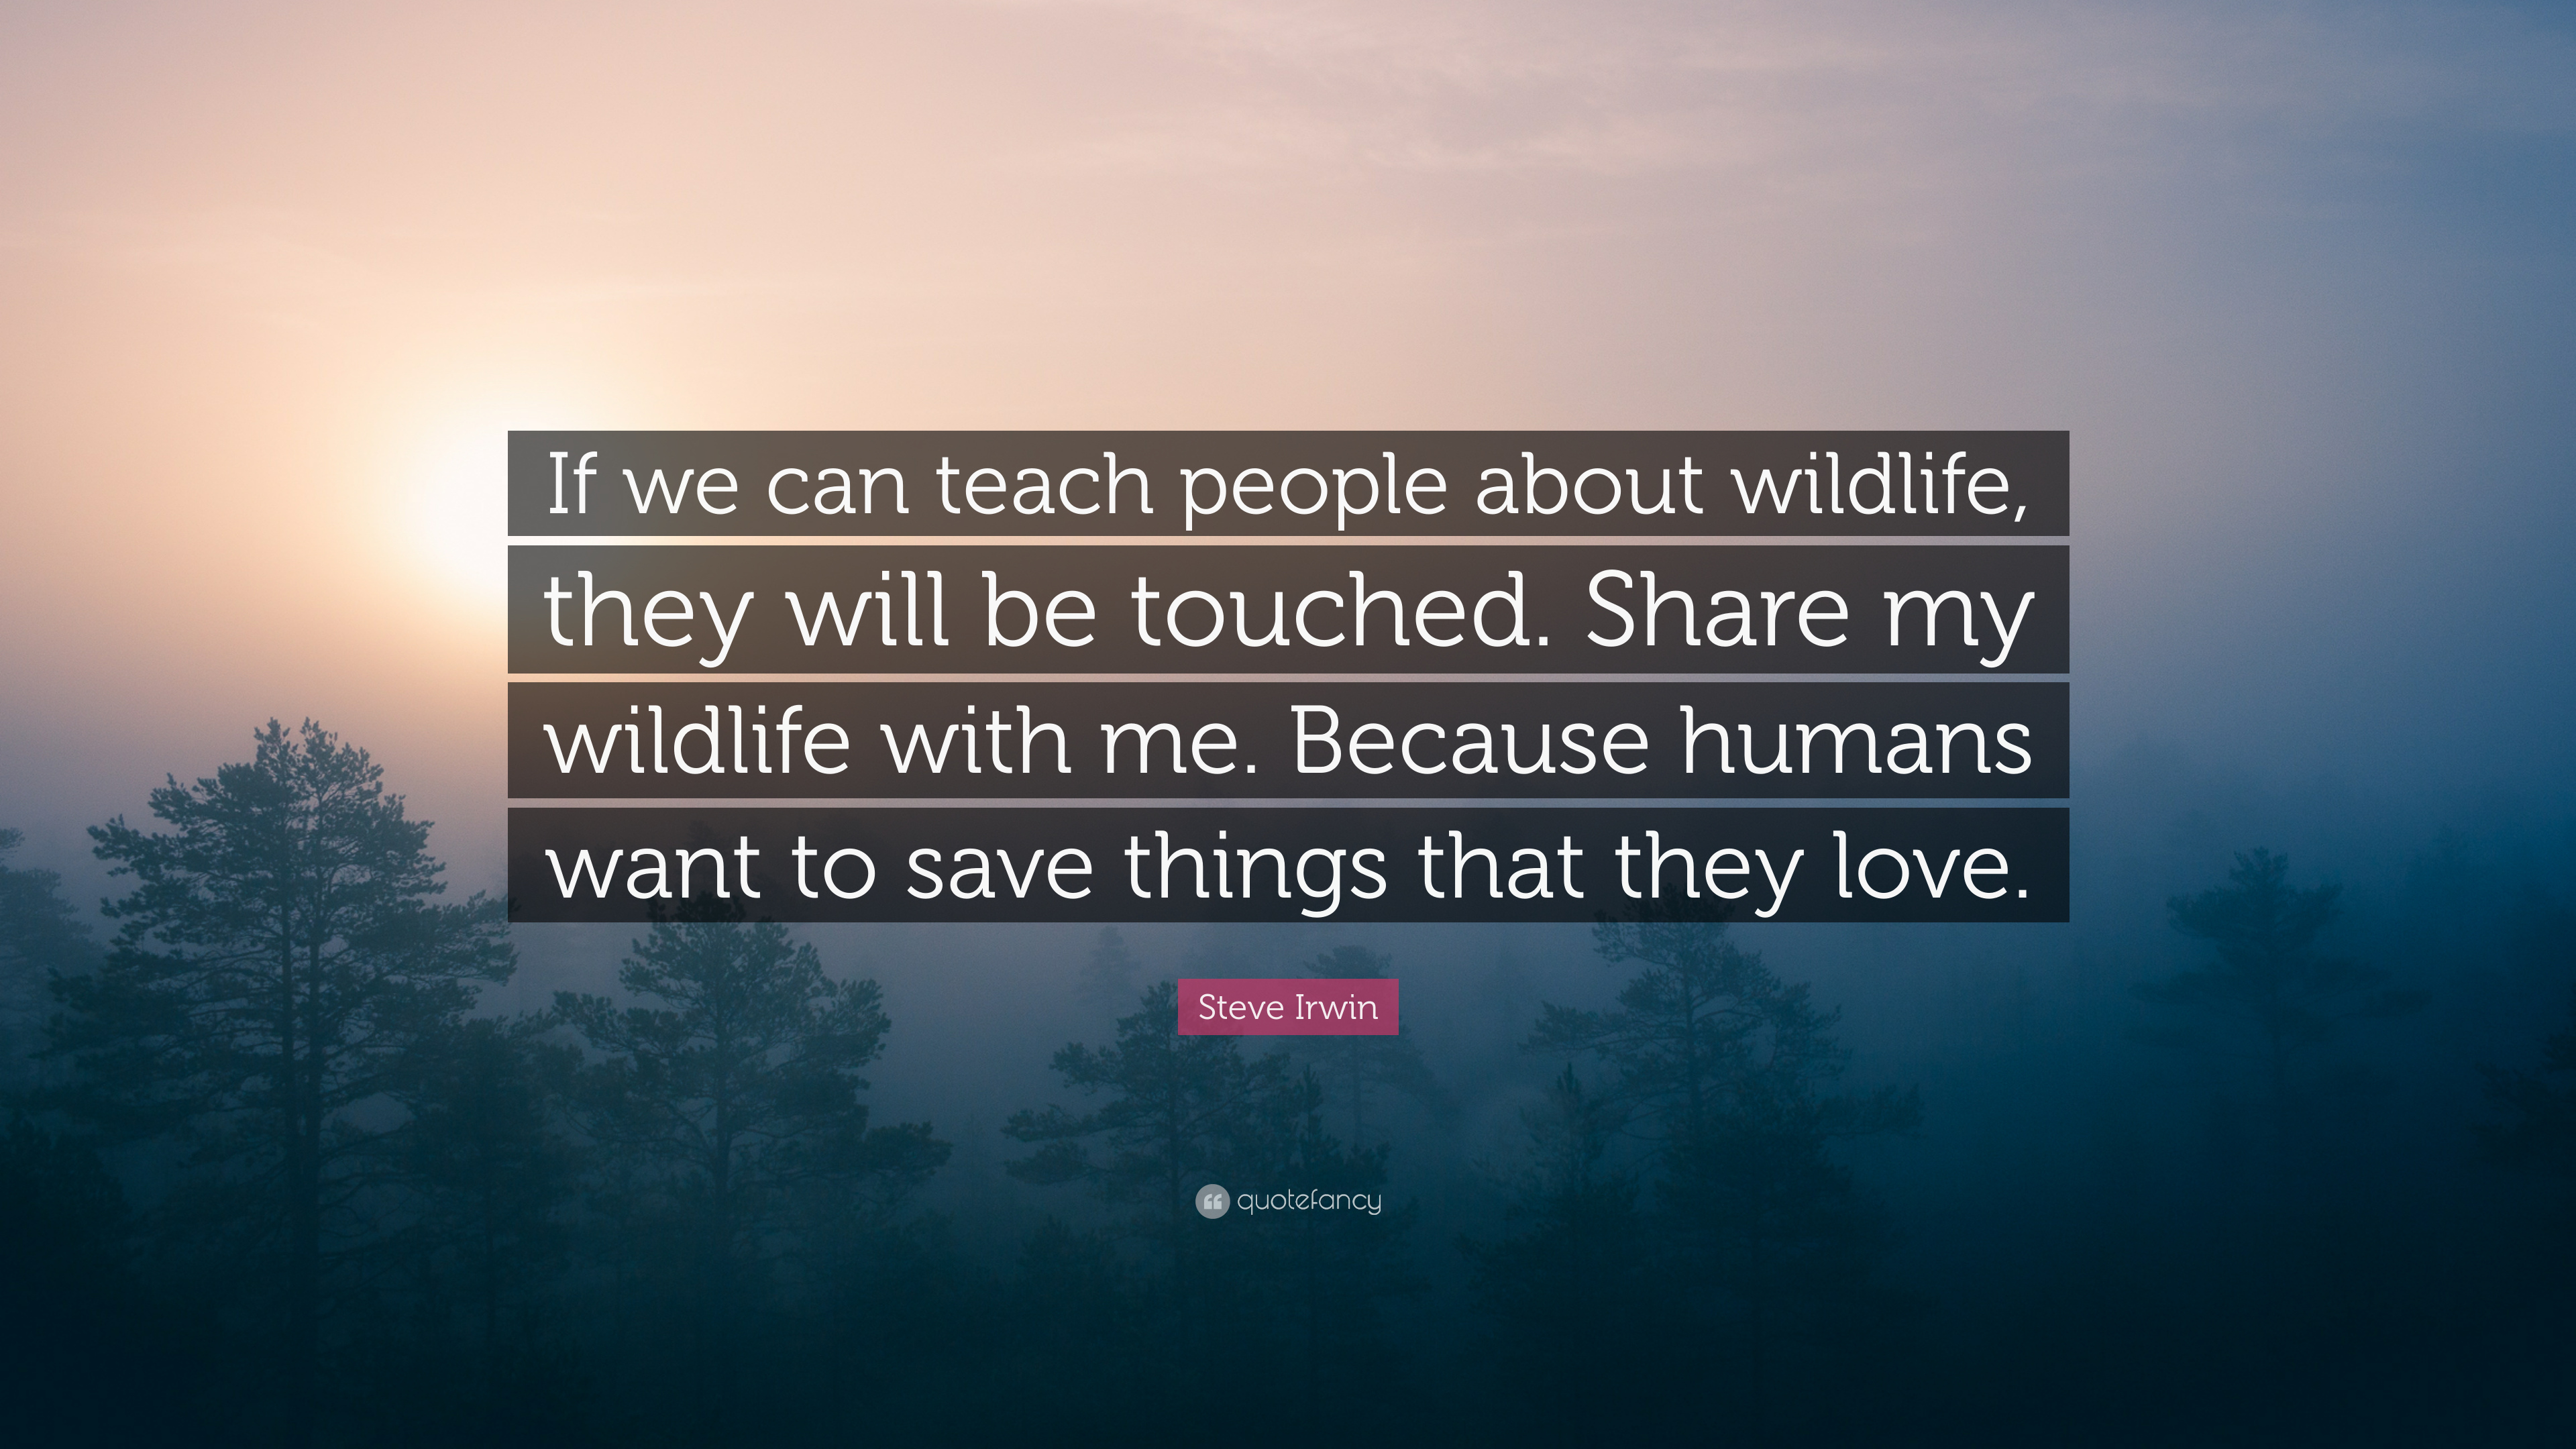 Steve Irwin Quote If We Can Teach People About Wildlife They Will Be Touched Share My Wildlife With Me Because Humans Want To Save Thin 7 Wallpapers Quotefancy